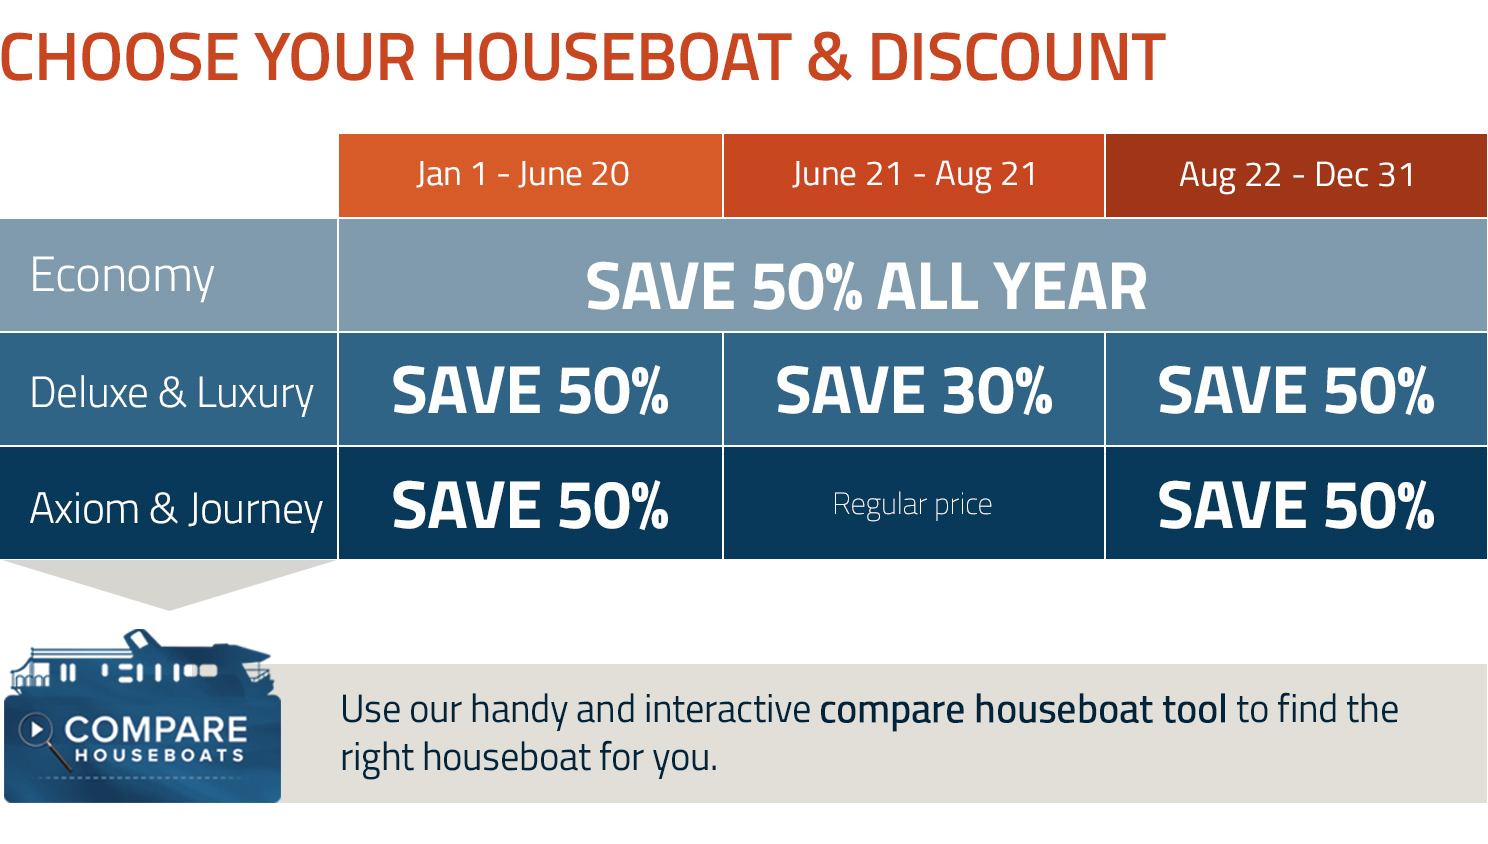 Choose Your Houseboat & Discount